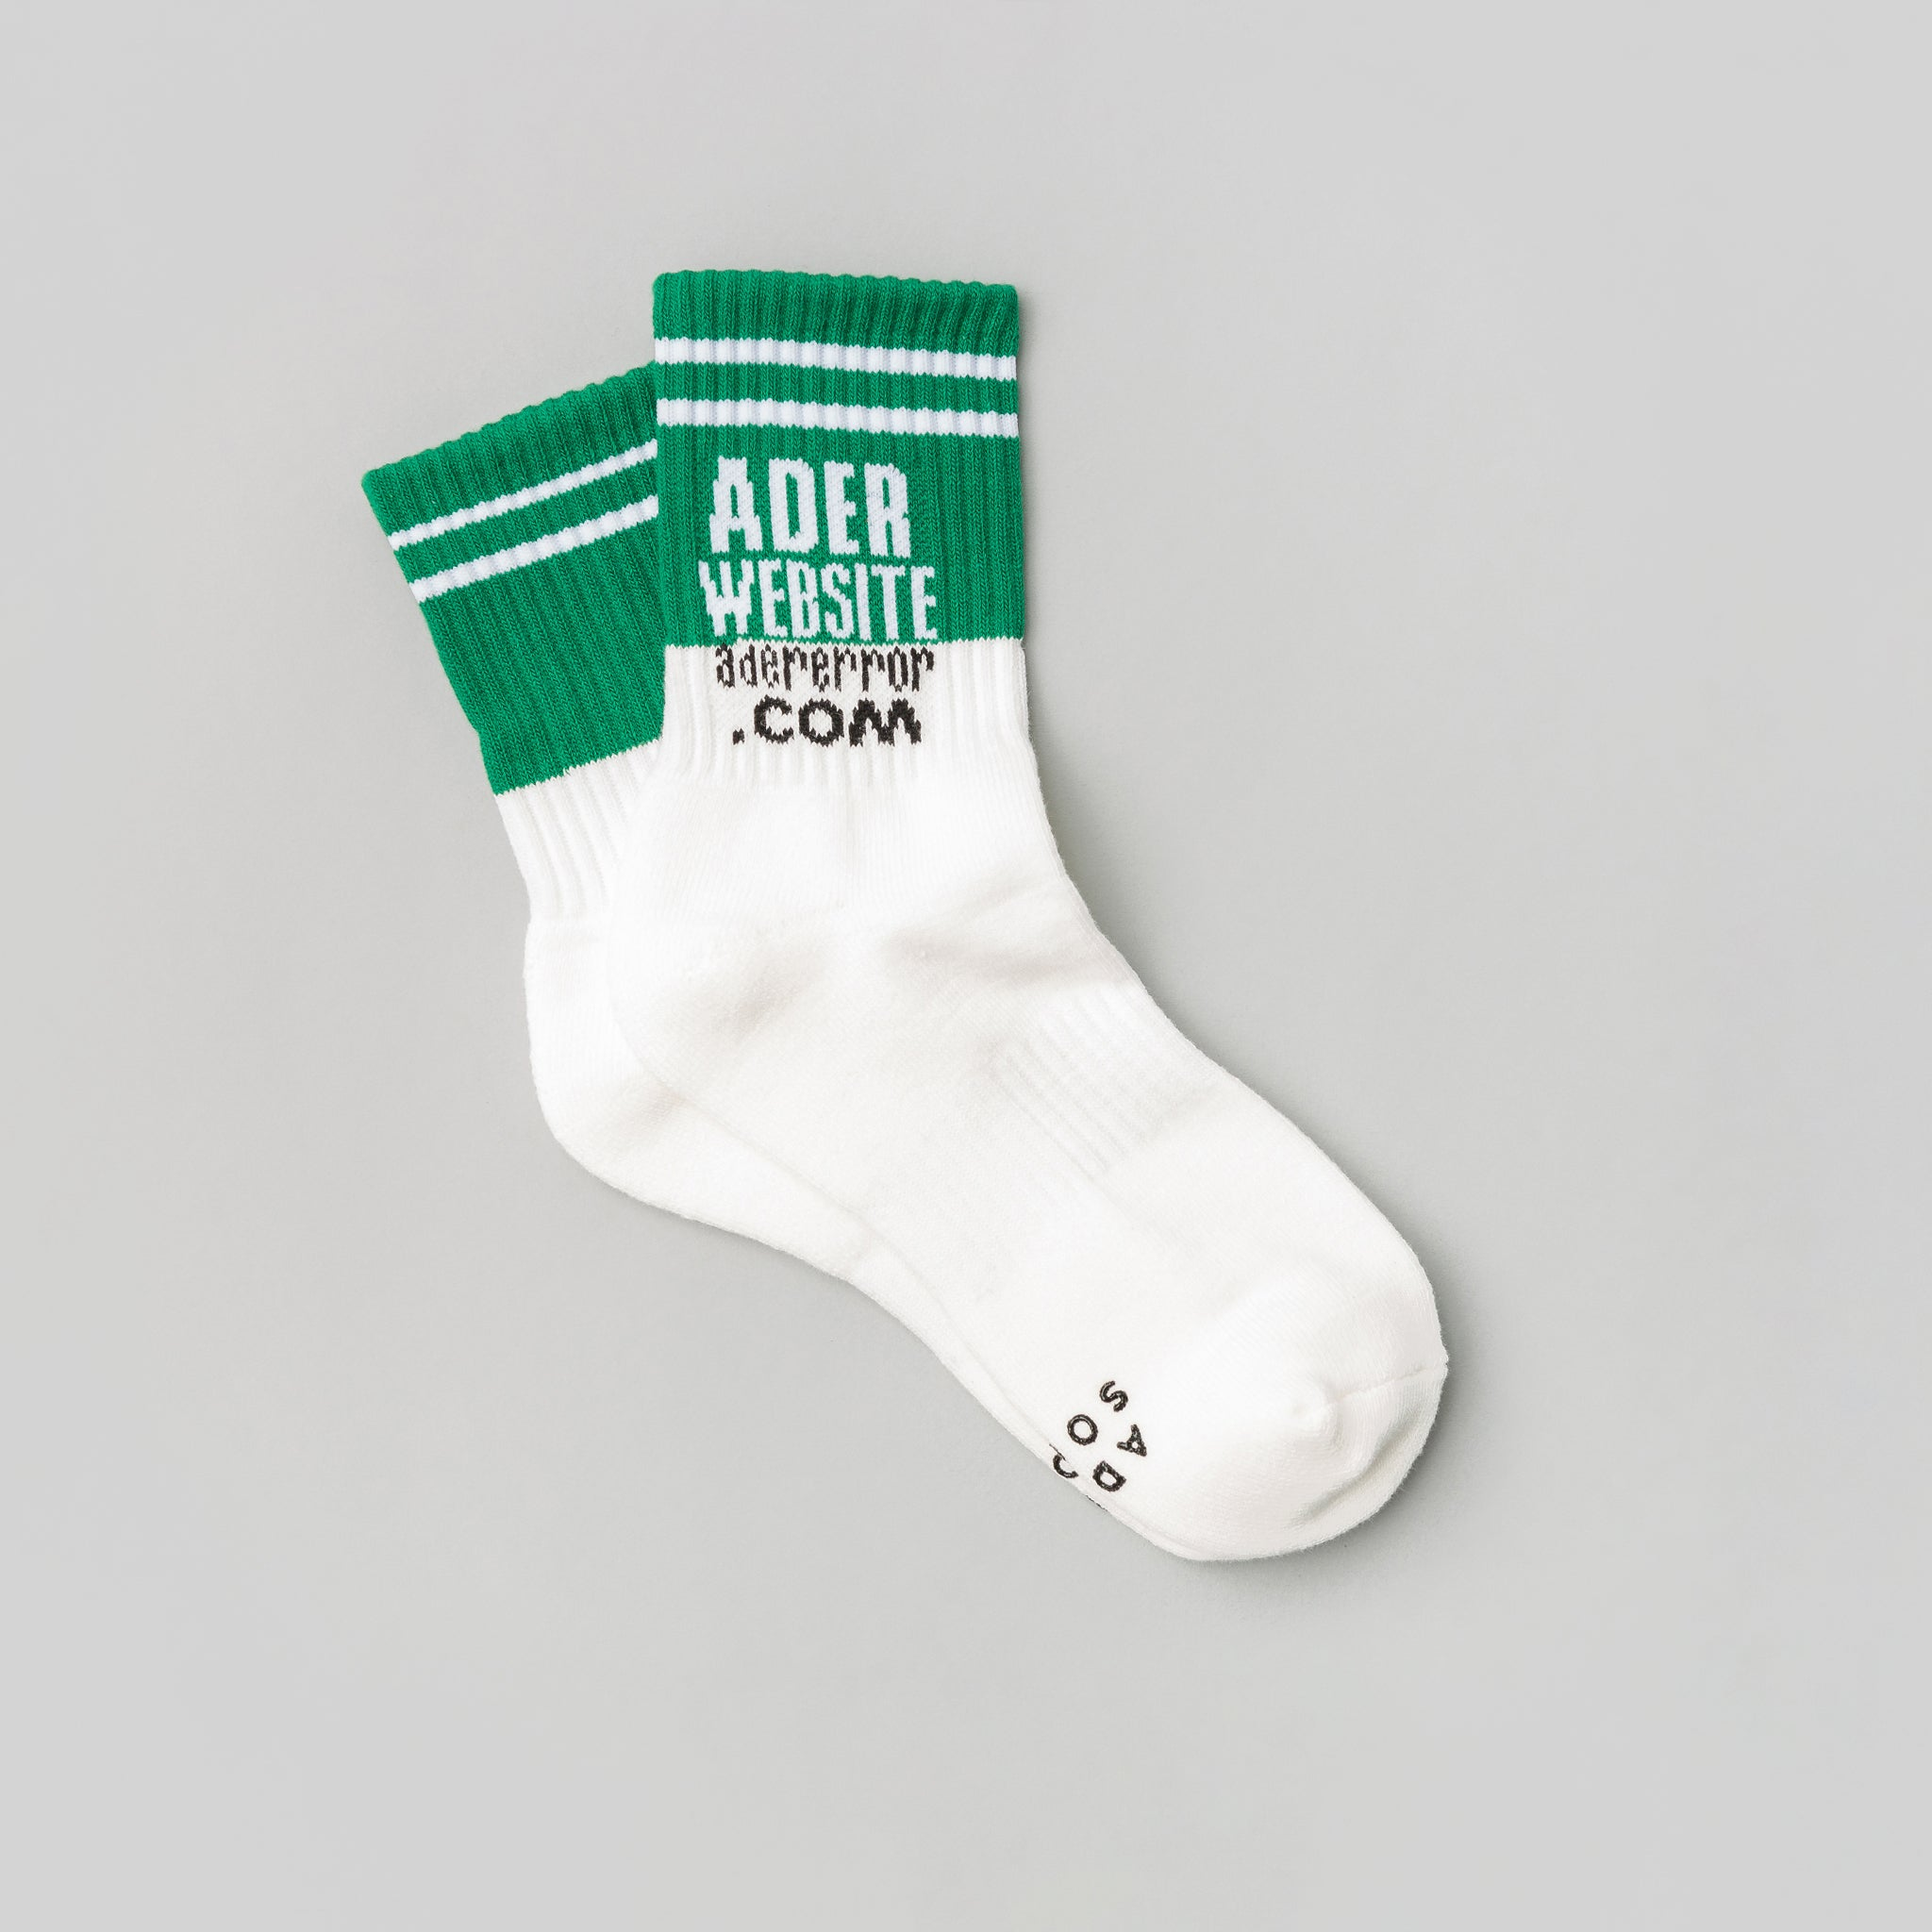 WWW Socks in Green/White